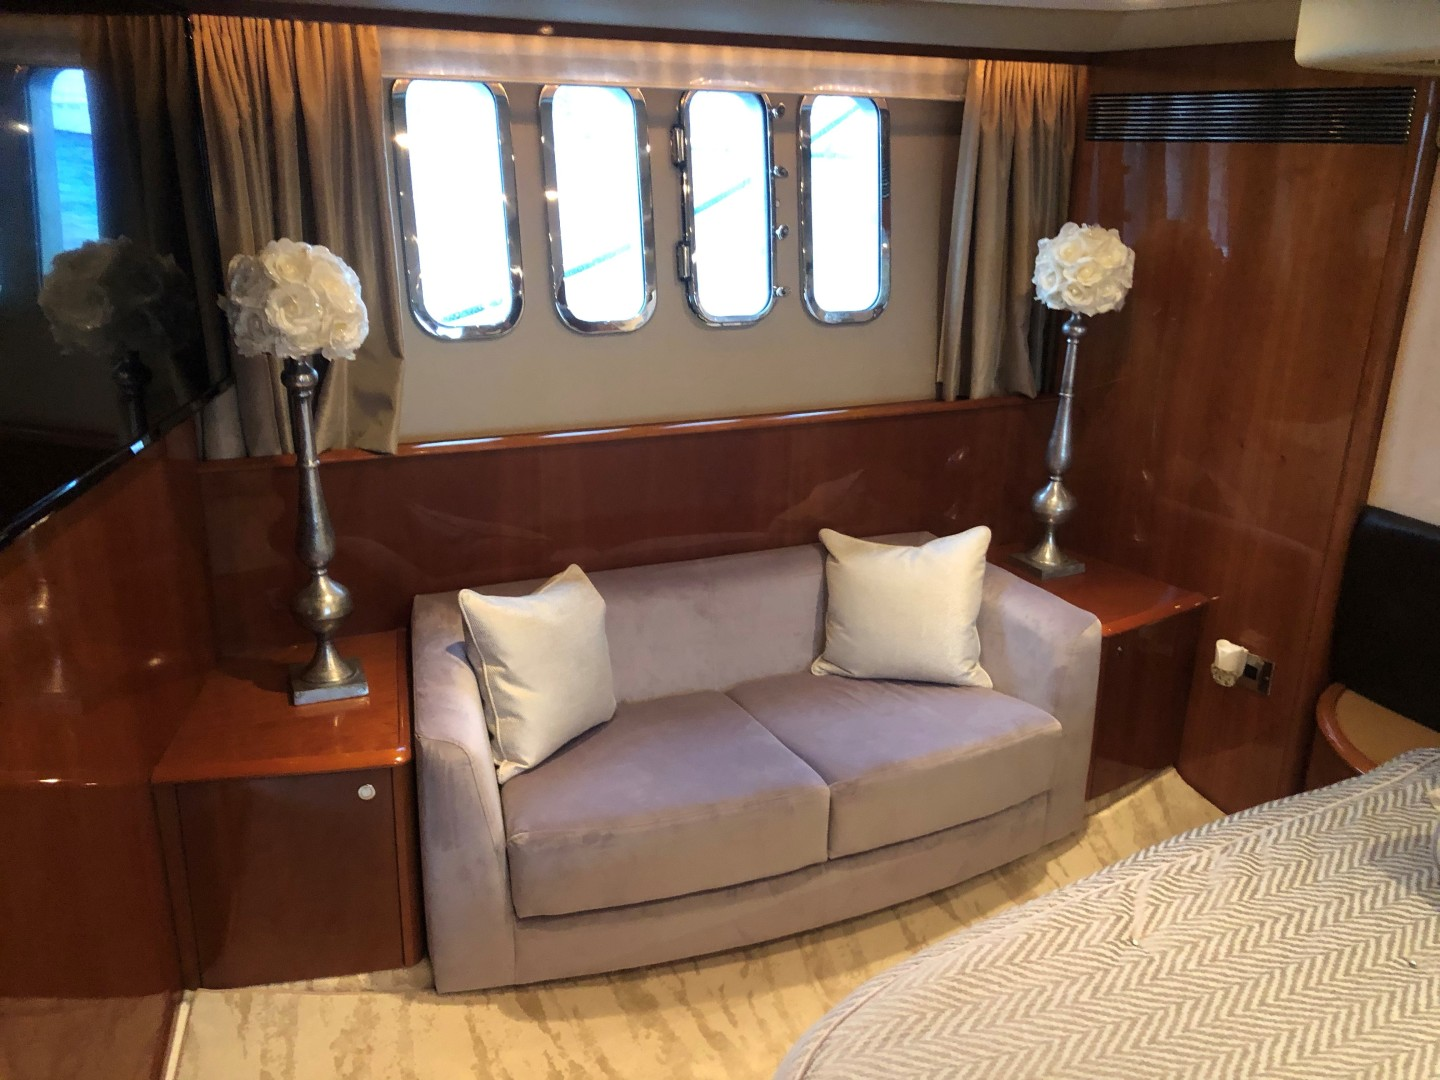 Princess-Flybridge Motor Yacht 2007-Hall Force One Palm Beach Boat Show-Florida-United States-1638227 | Thumbnail